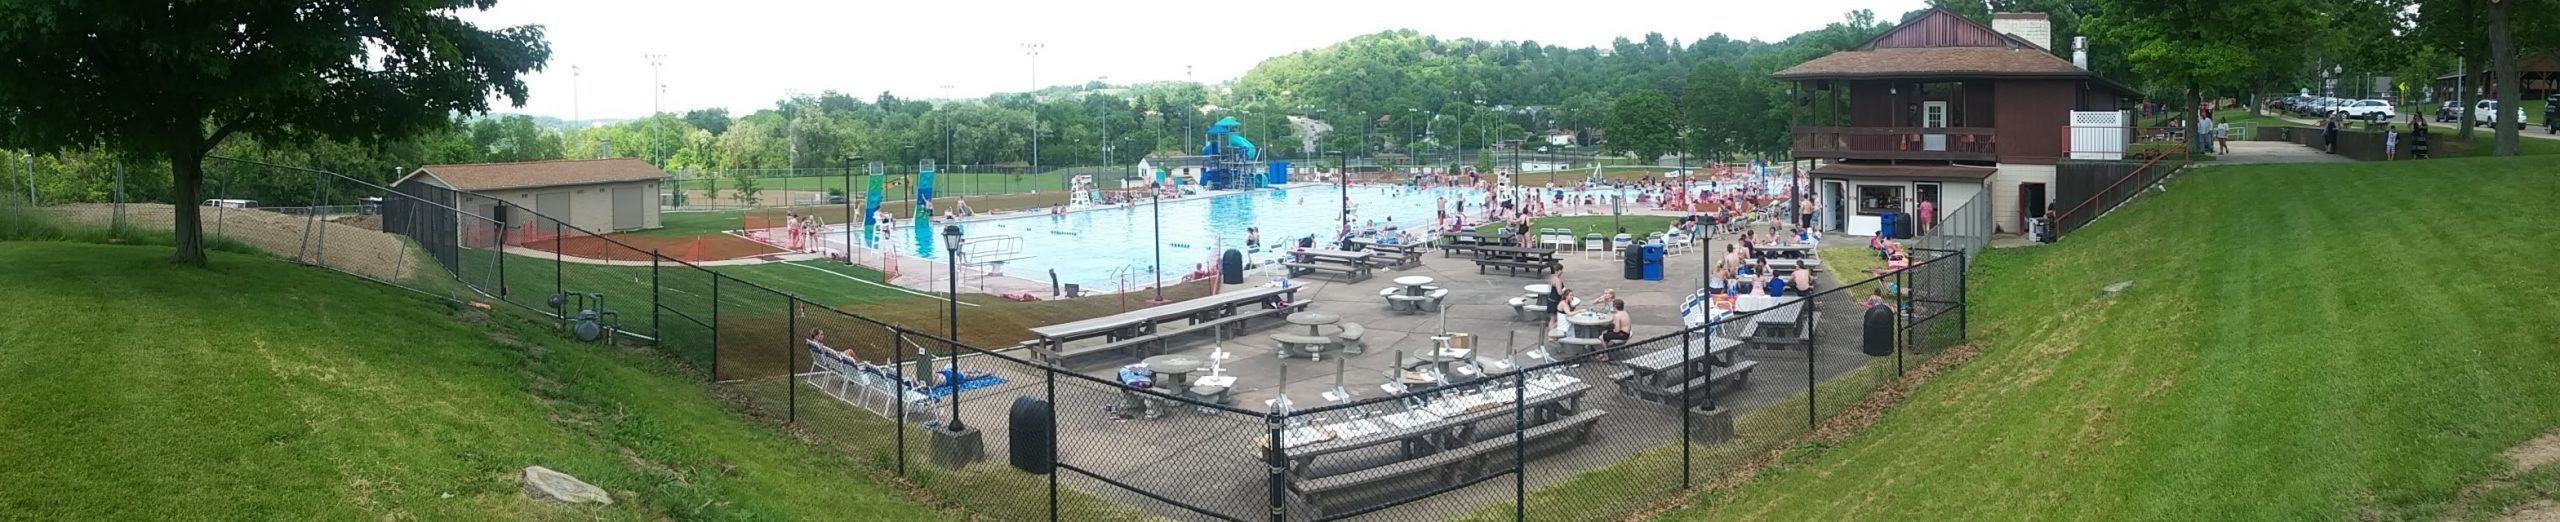 Landscape of Scott Township pool